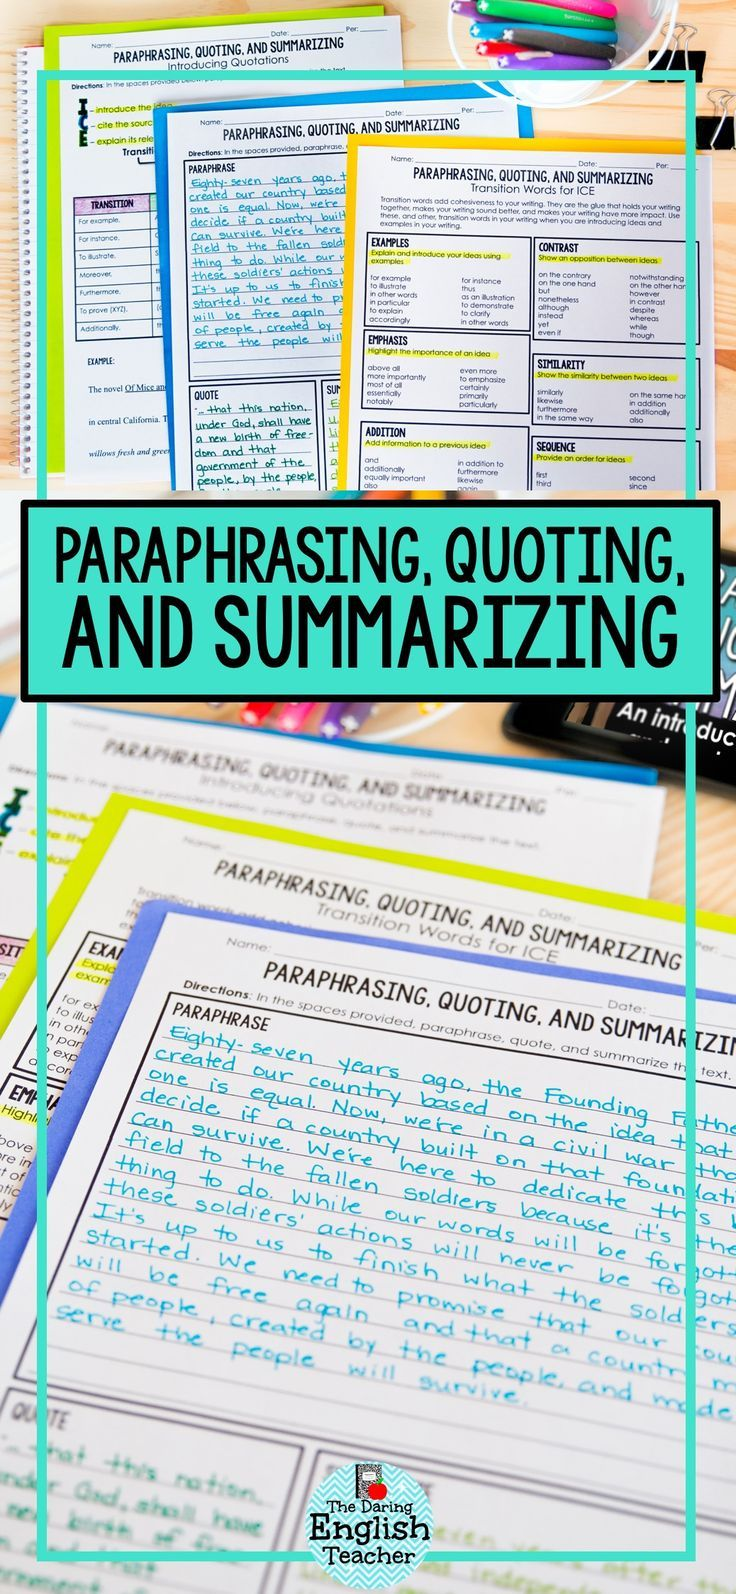 Paraphrase Quote Summarize Teach Your Student How To And Text With Th Teaching Summarizing Writing Lesson Instruction Identify The Difference Between Paraphrasing Quoting